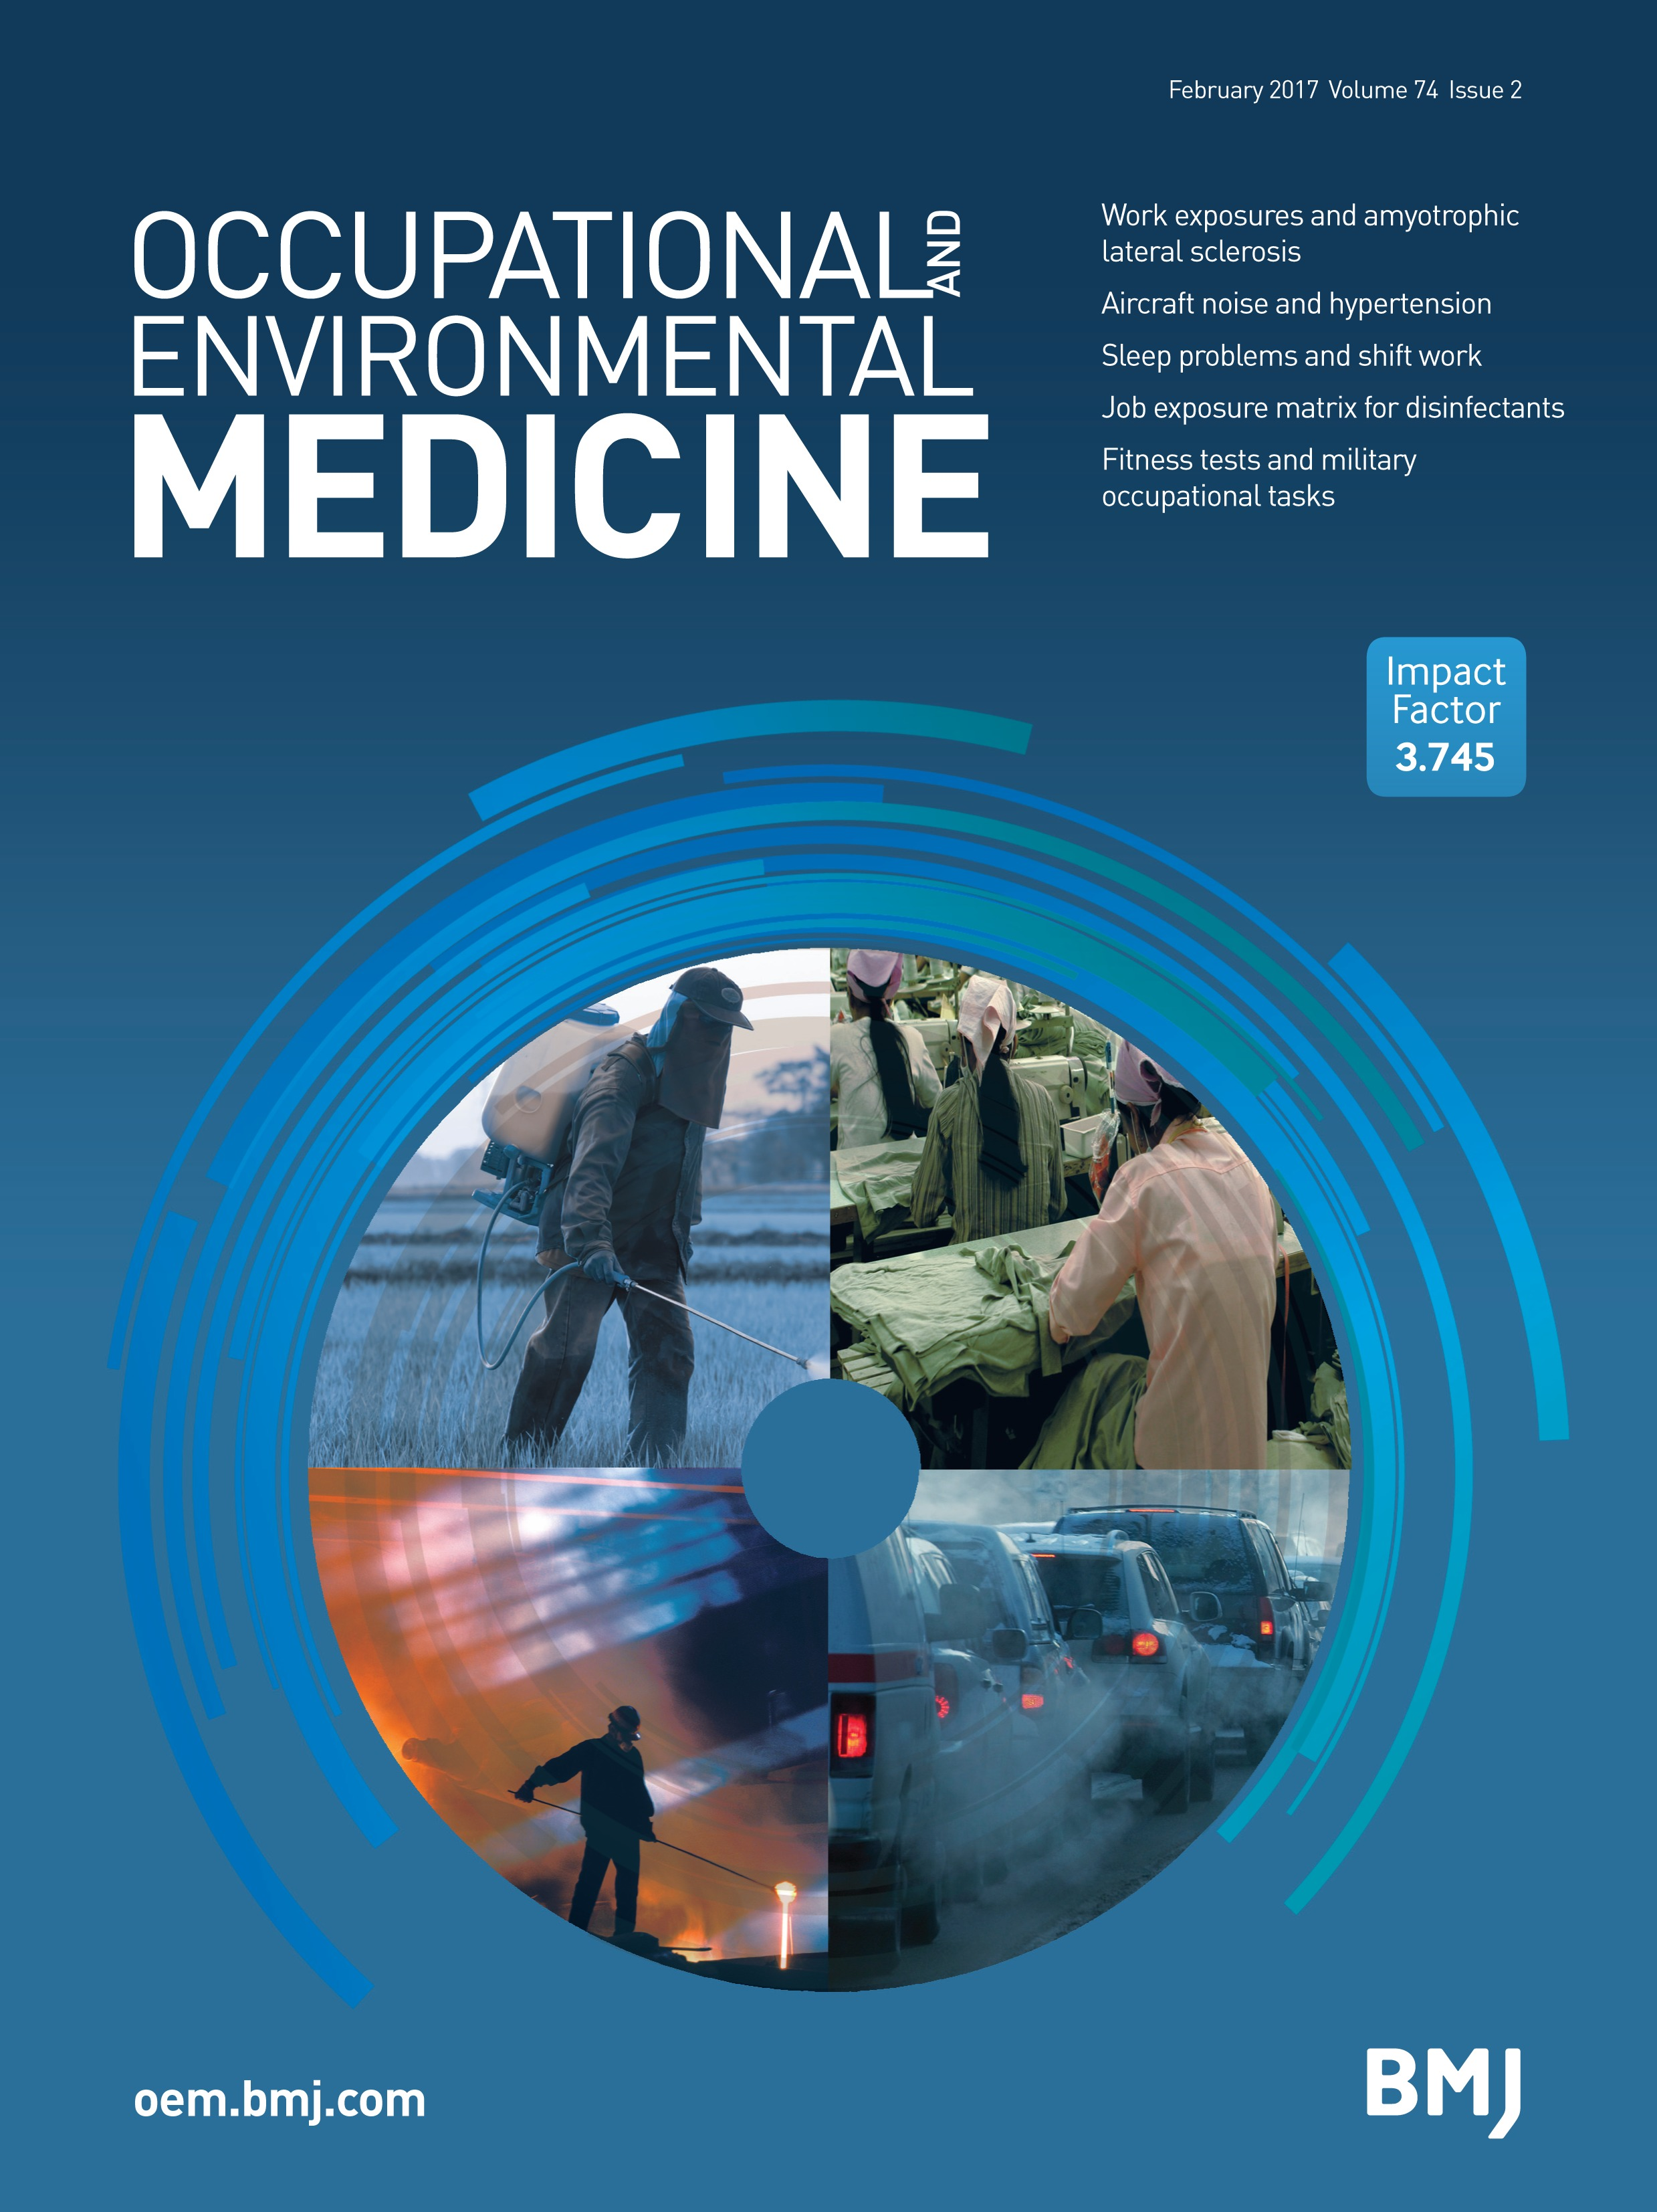 Occupational exposures and the risk of amyotrophic lateral